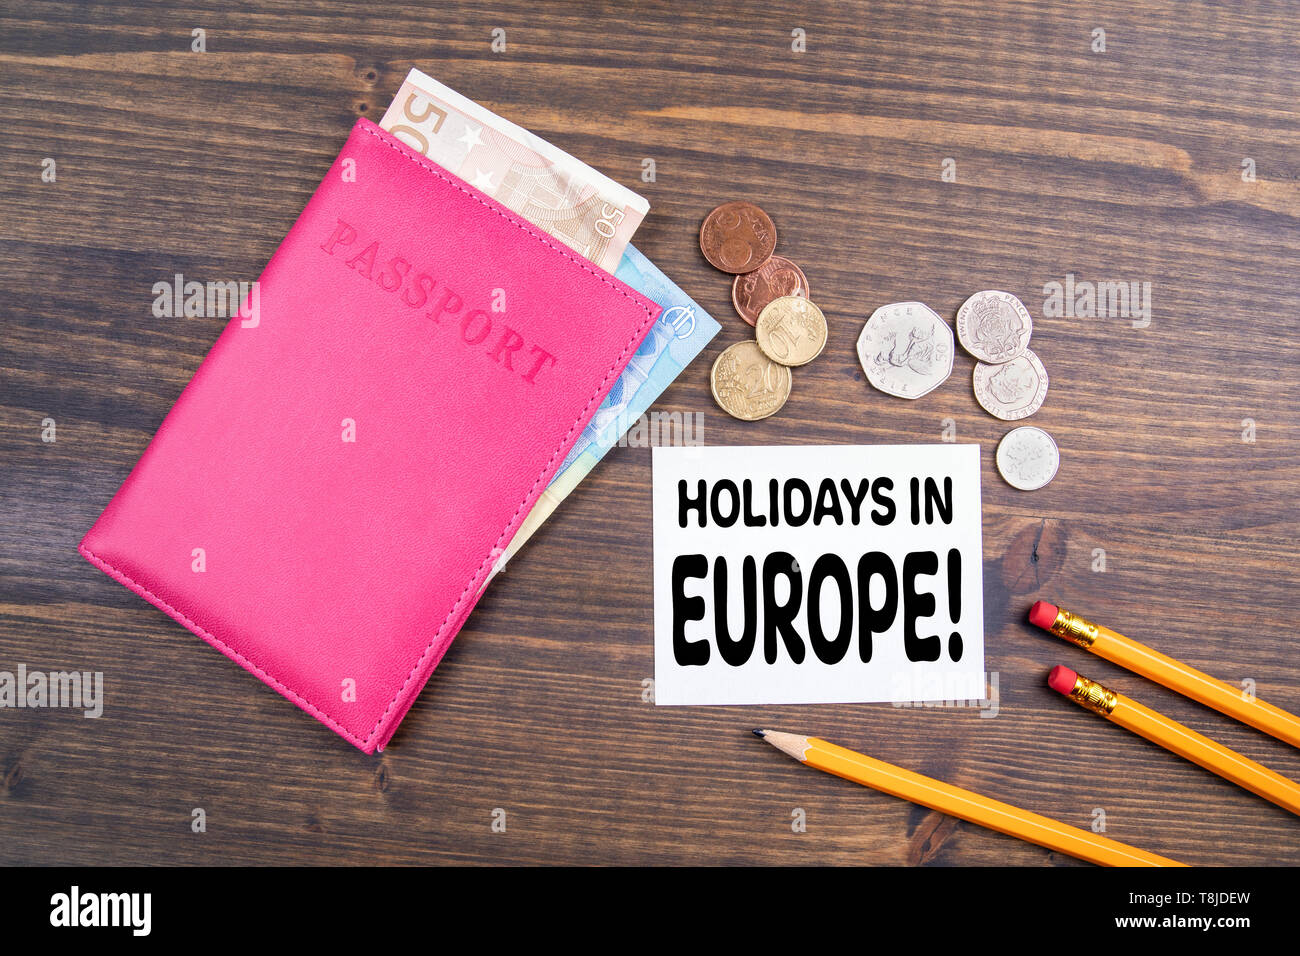 Holidays in Europe. Euro money and British coins with passport - Stock Image